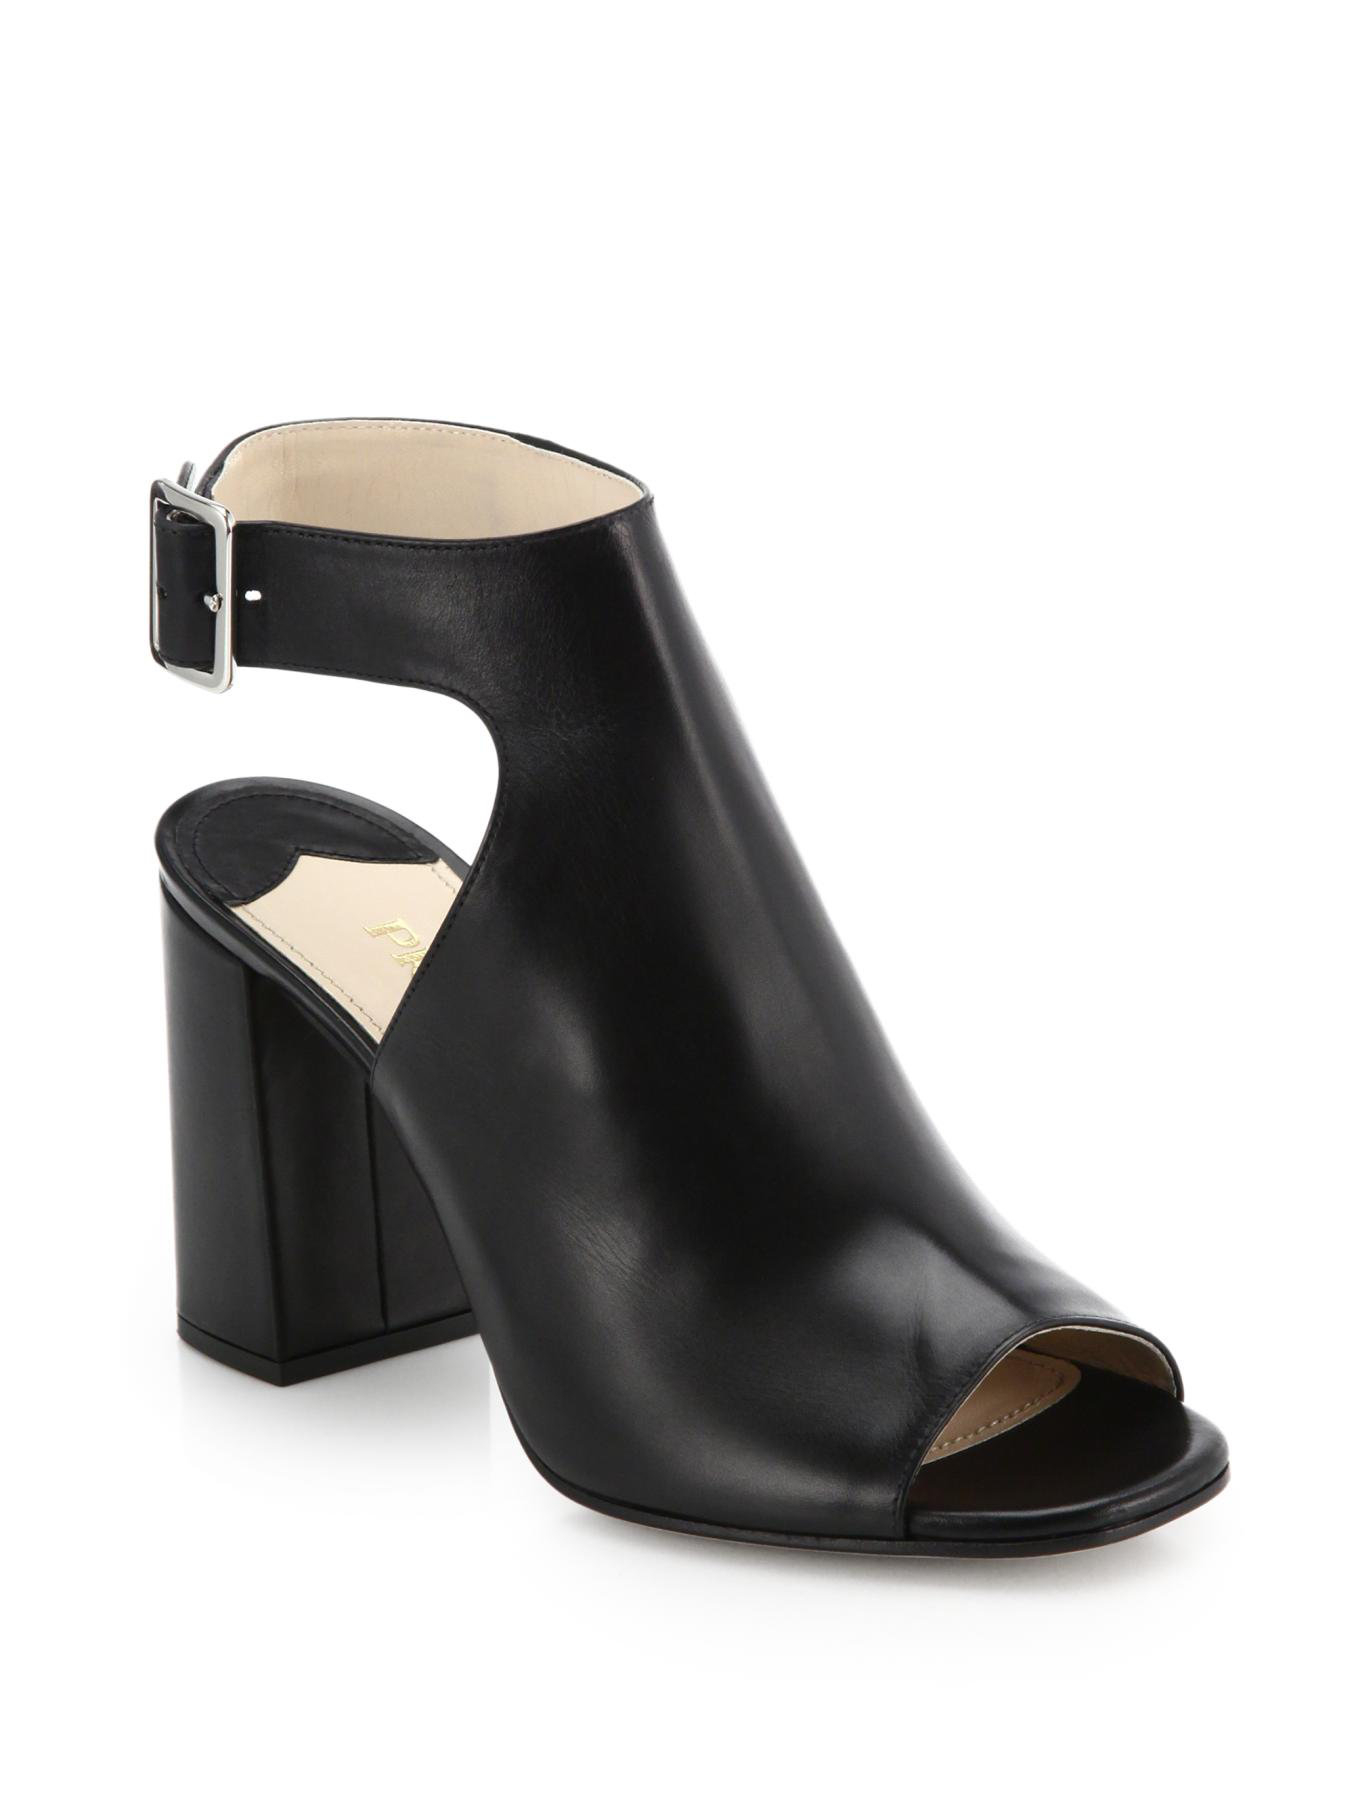 Open Toe Ankle Boots - results from brands Pleaser, LifeStride, Steve Madden, products like LifeStride Carla Open Toe Ankle Boots Stone, Sam Edelman Easton Perforated Open Toe Bootie at Nordstrom Rack, Women's Pleaser Delight RBS Open-Toe Ankle Boot Boots, Shoes.